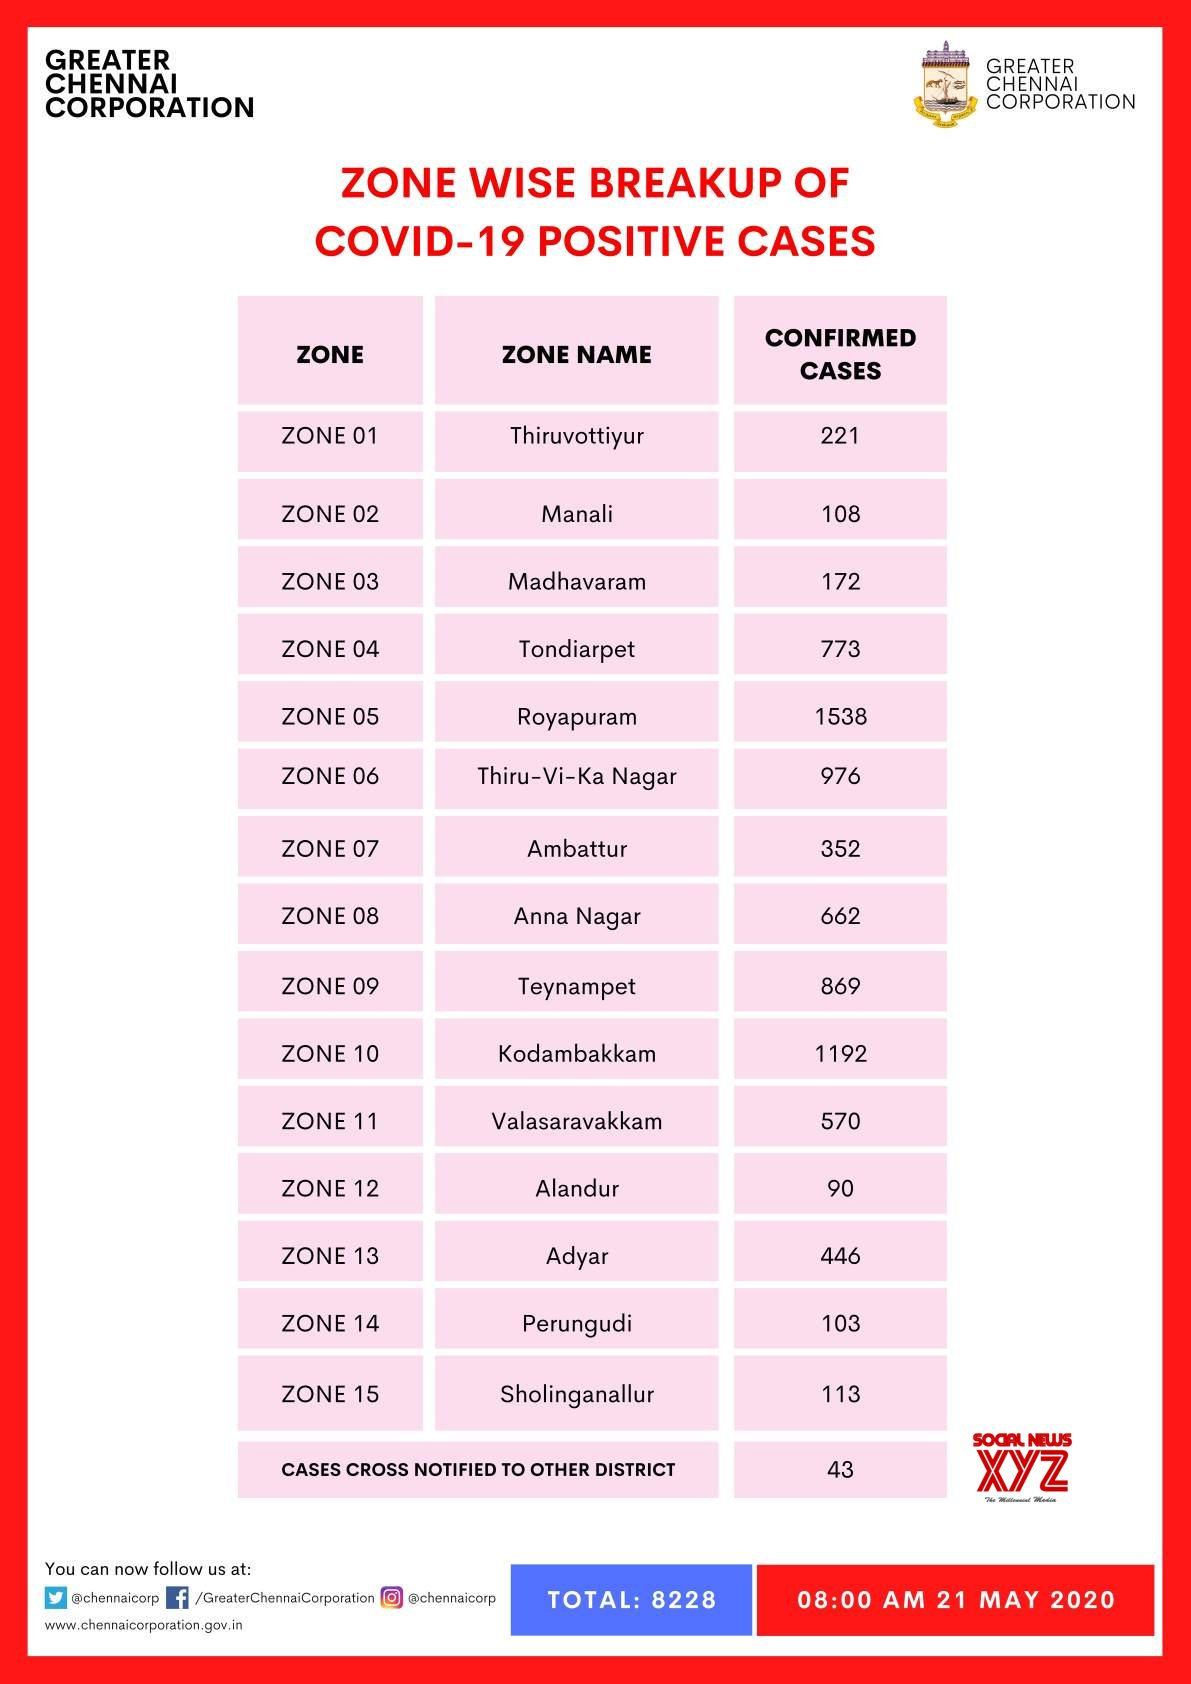 Chennai Zone Wise Breakup Of COVID 19 Positive Cases As On 20th May